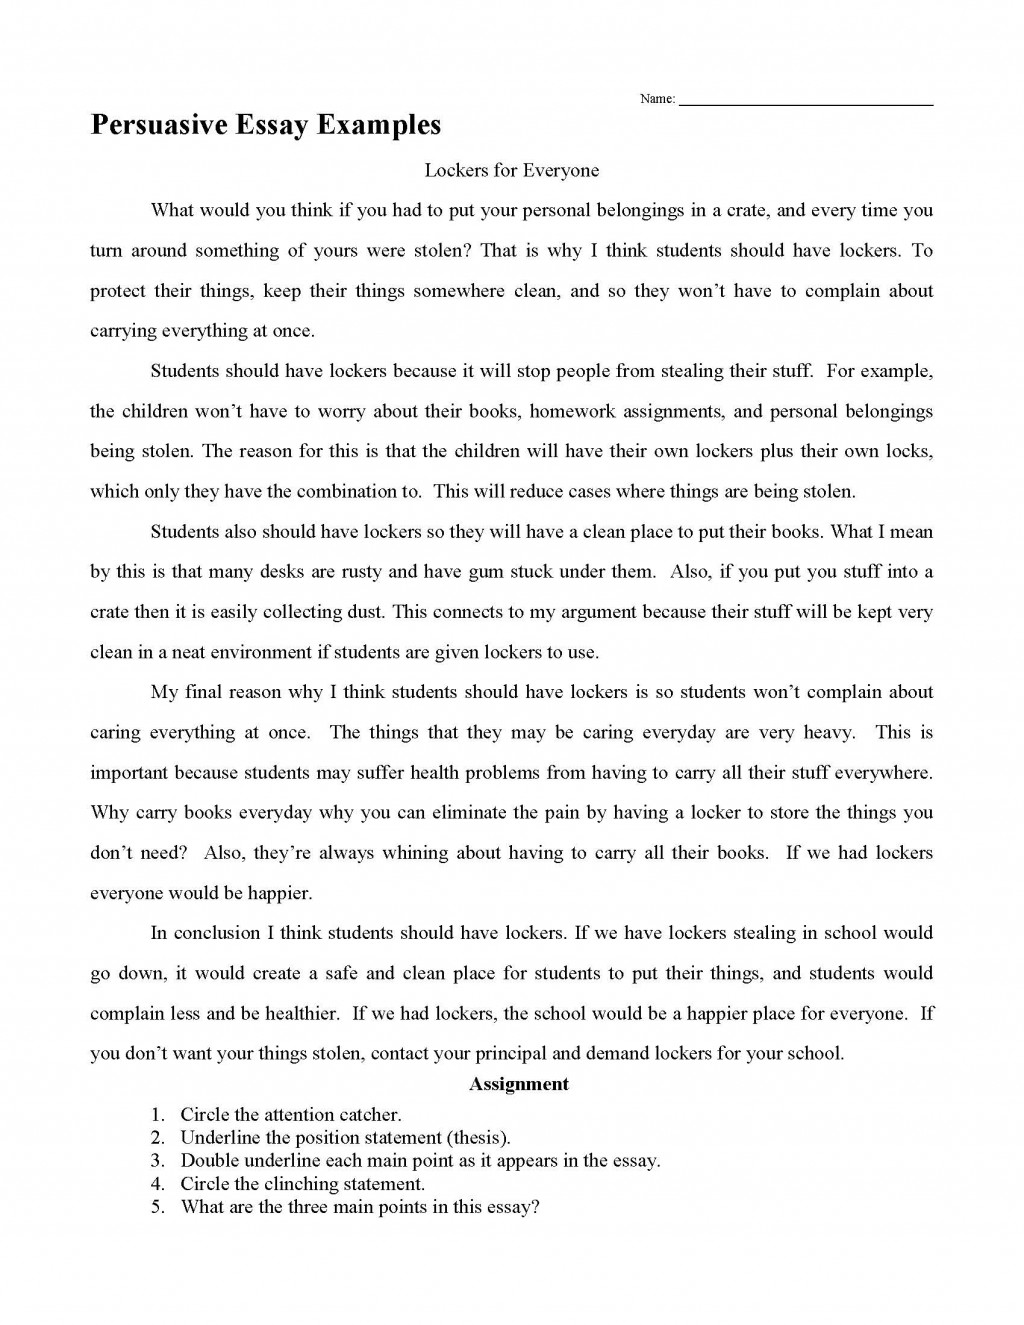 027 Persuasive Essay Examples Research Paper How To Write Breathtaking A Fast Youtube Faster Large